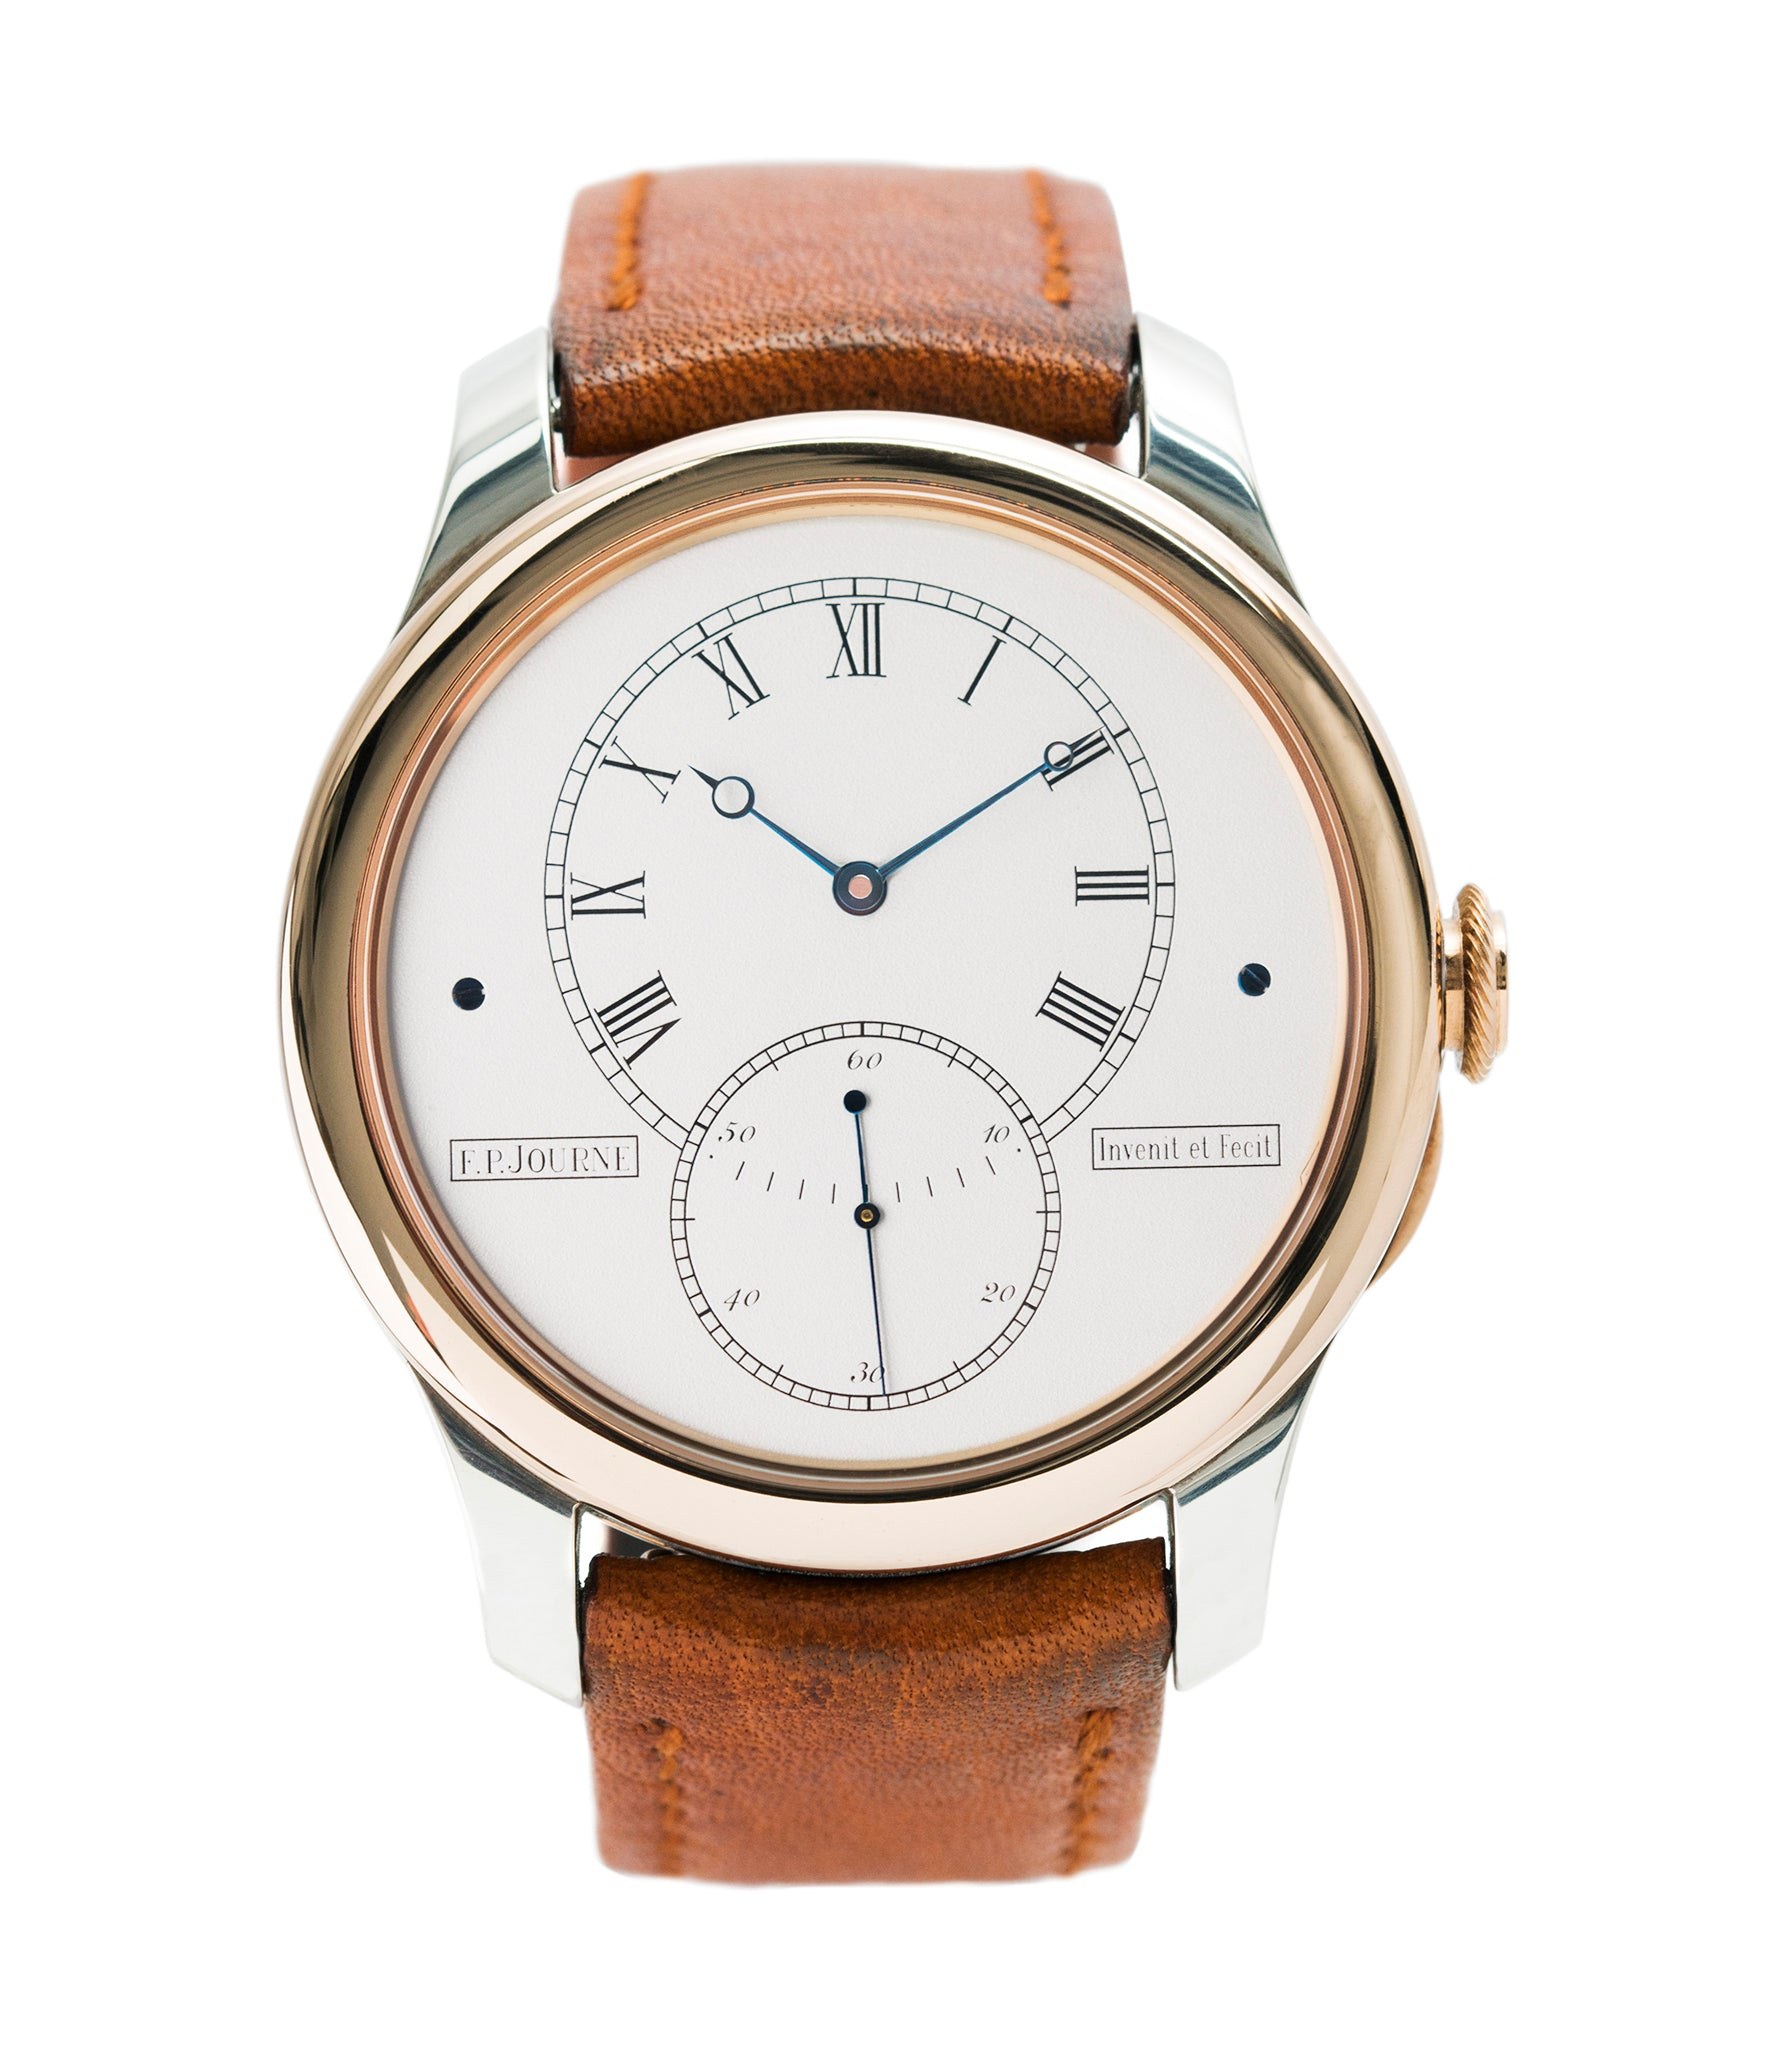 buy F. P. Journe Tourbillon Historique T30 Limited Edition of 99 rare duel barrel tourbillon dress watch in rose gold and silver for sale online at A Collected Man London approved seller of independent watchmakers